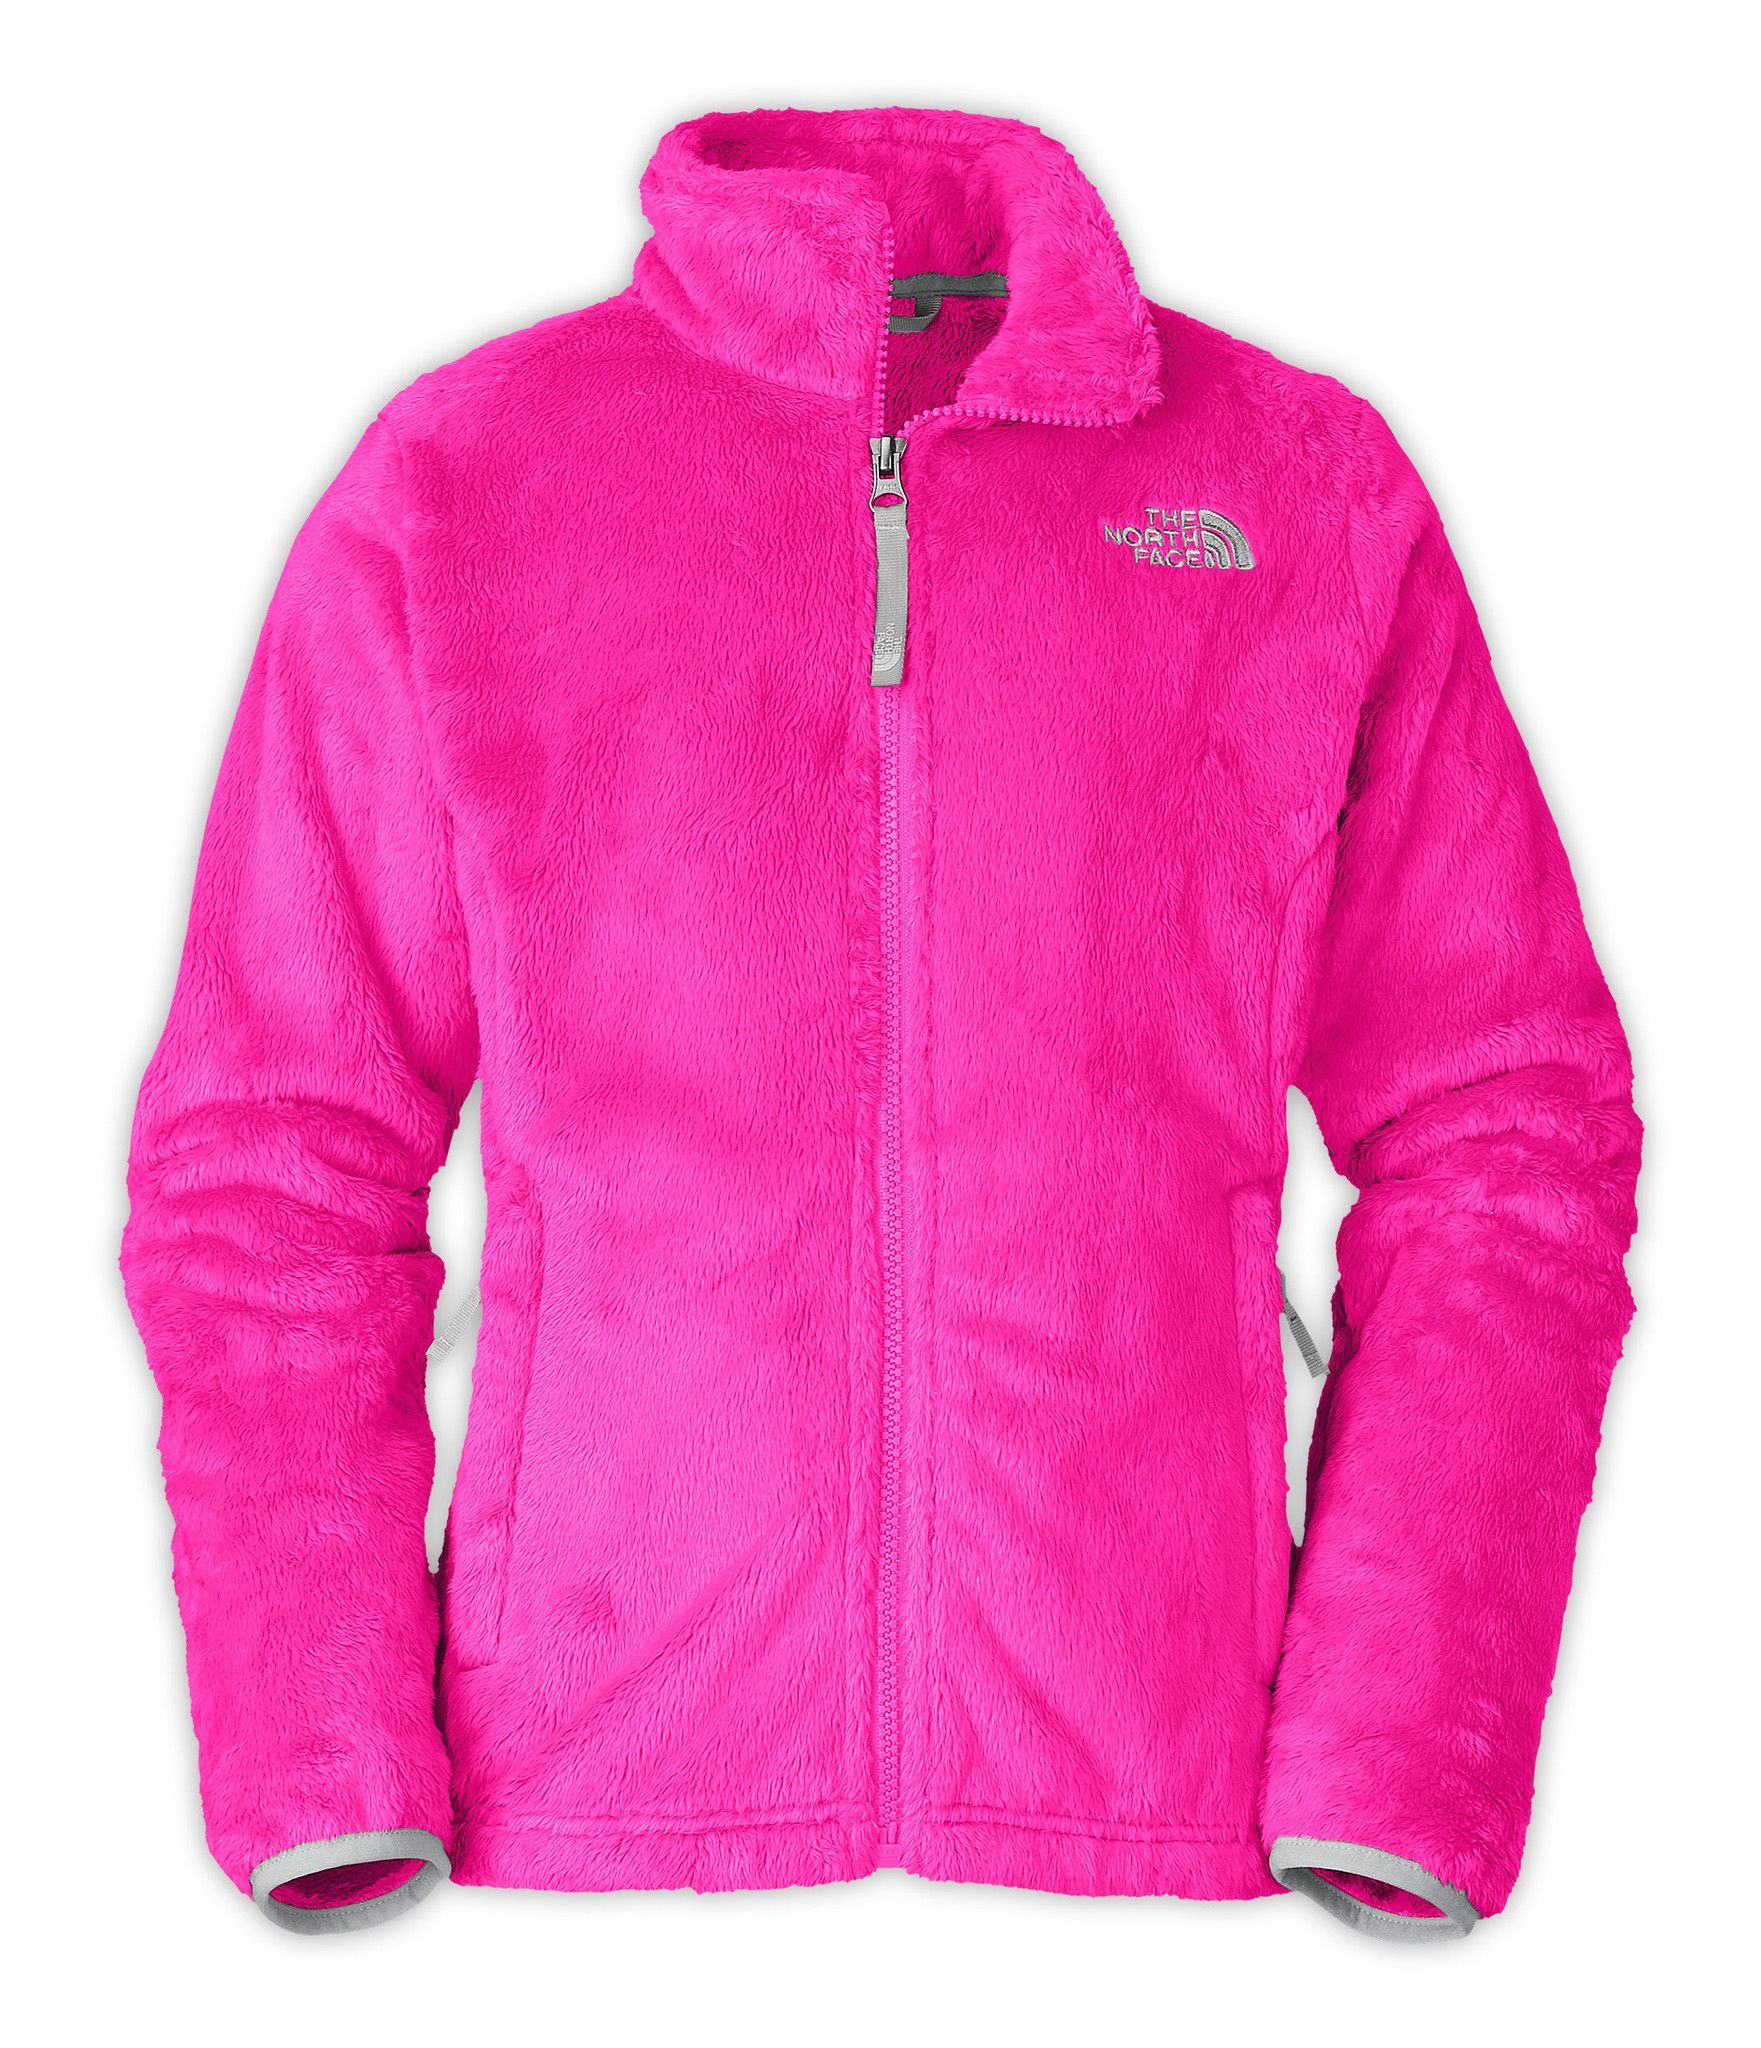 f3e240ae2 The North Face Girls' Osolita Jacket   clothes   North face girls ...